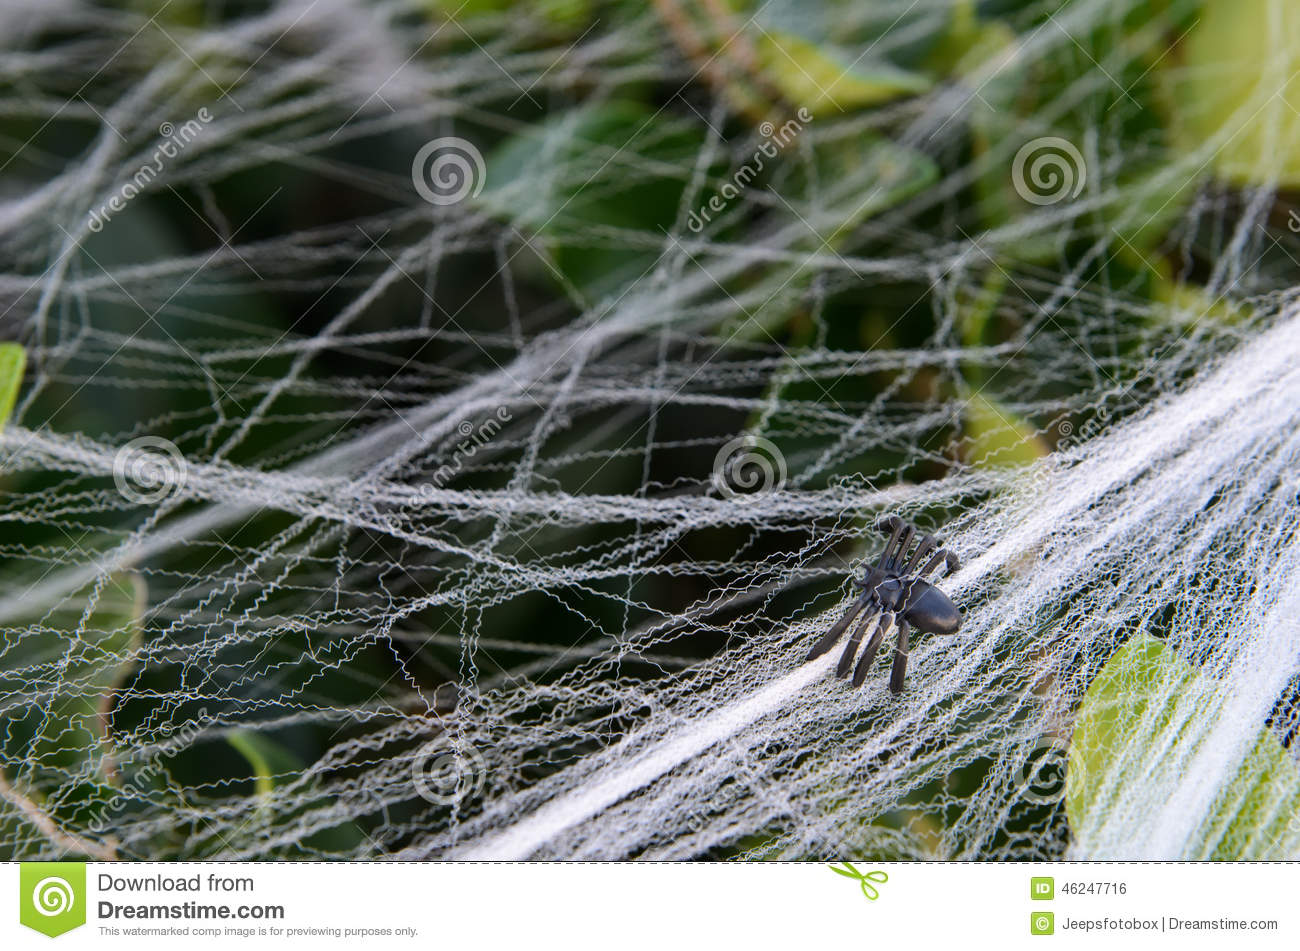 Fake Small Halloween Spider Decoration On Bush With Web Stock Photo